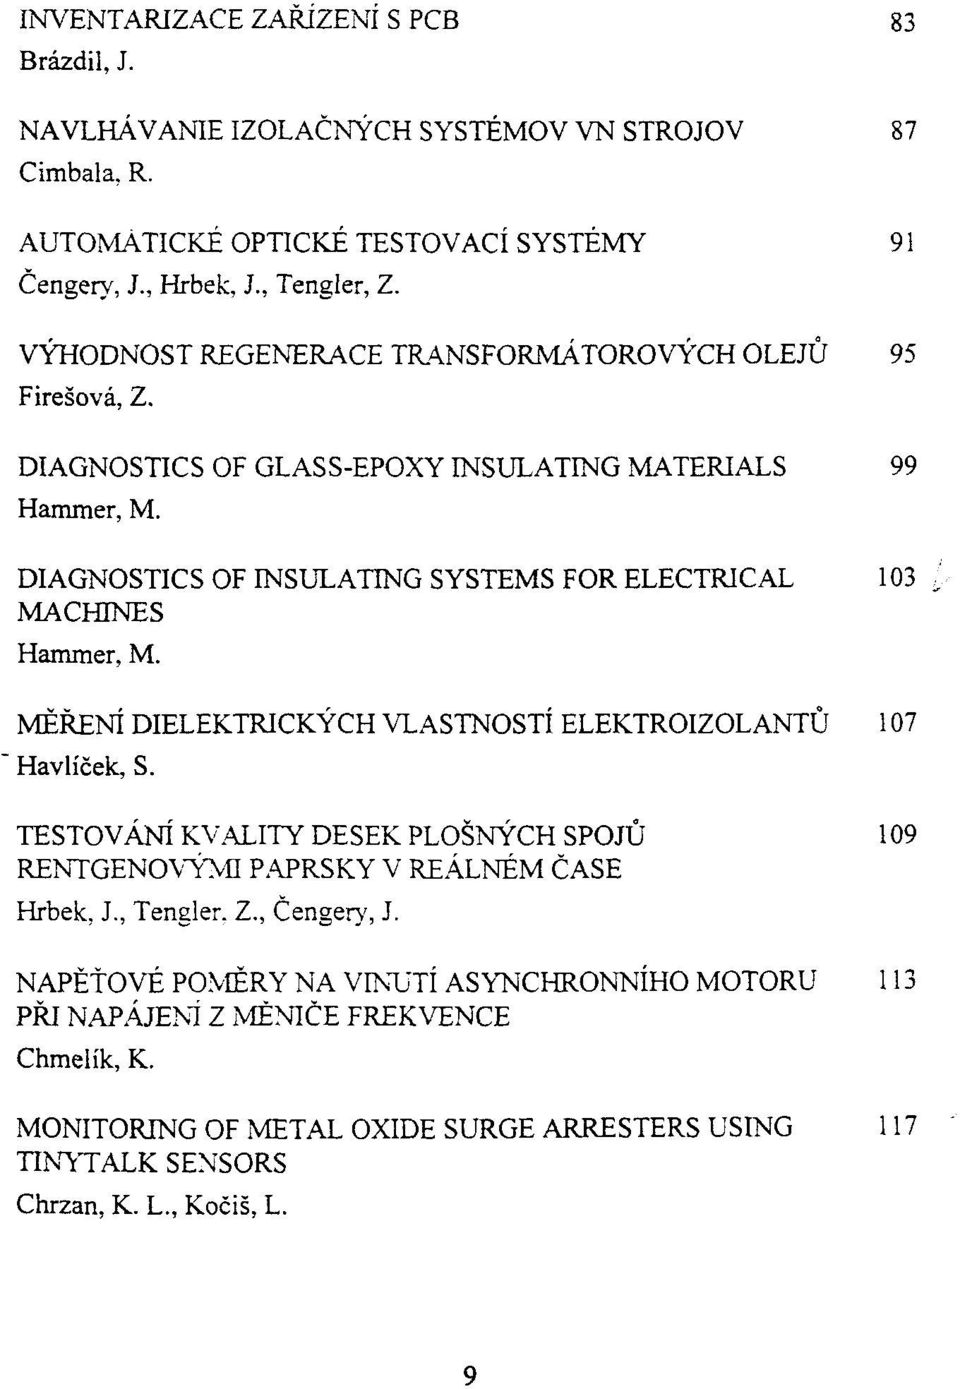 "DIAGNOSTICS OF INSULATING SYSTEMS FOR ELECTRICAL 103 MACHINES Hammer, M. MERENI DIELEKTRICKYCH VLASTNOSTI ELEKTROIZOLANTU 107 "" Havlicek, S."